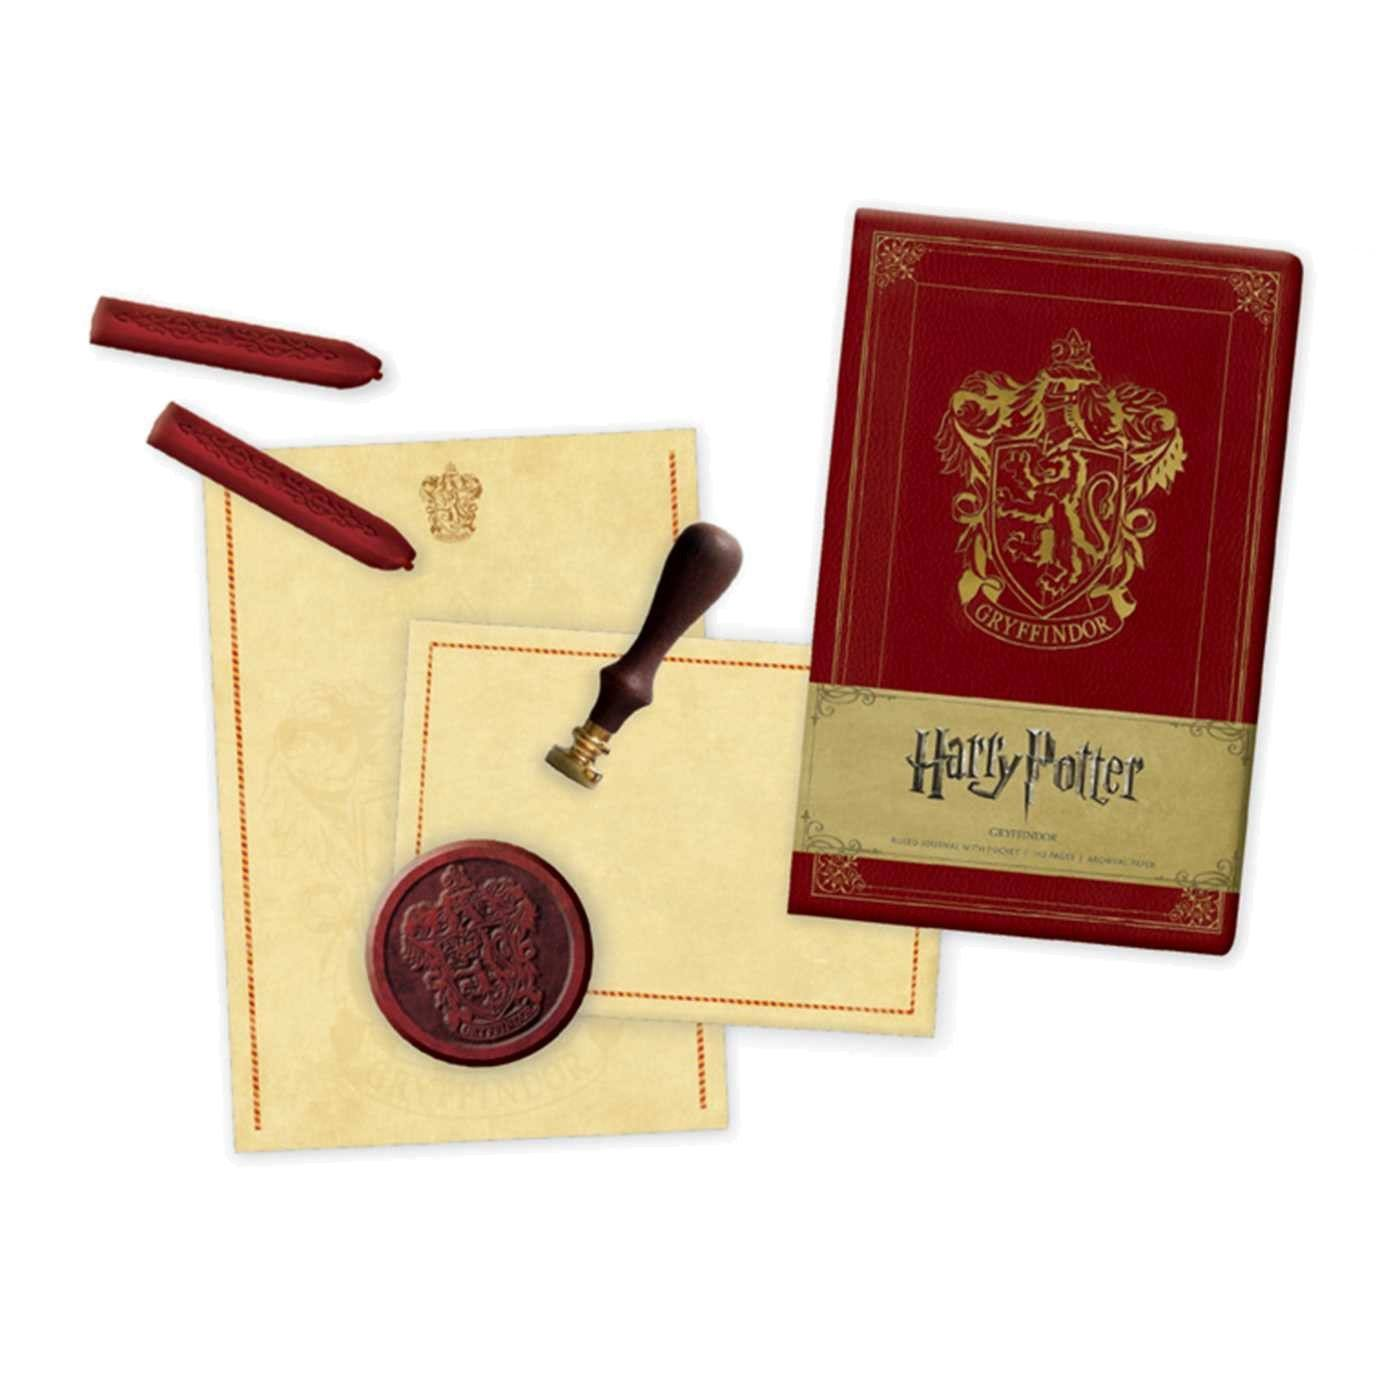 Harry Potter Deluxe Stationery Set Gryffindor